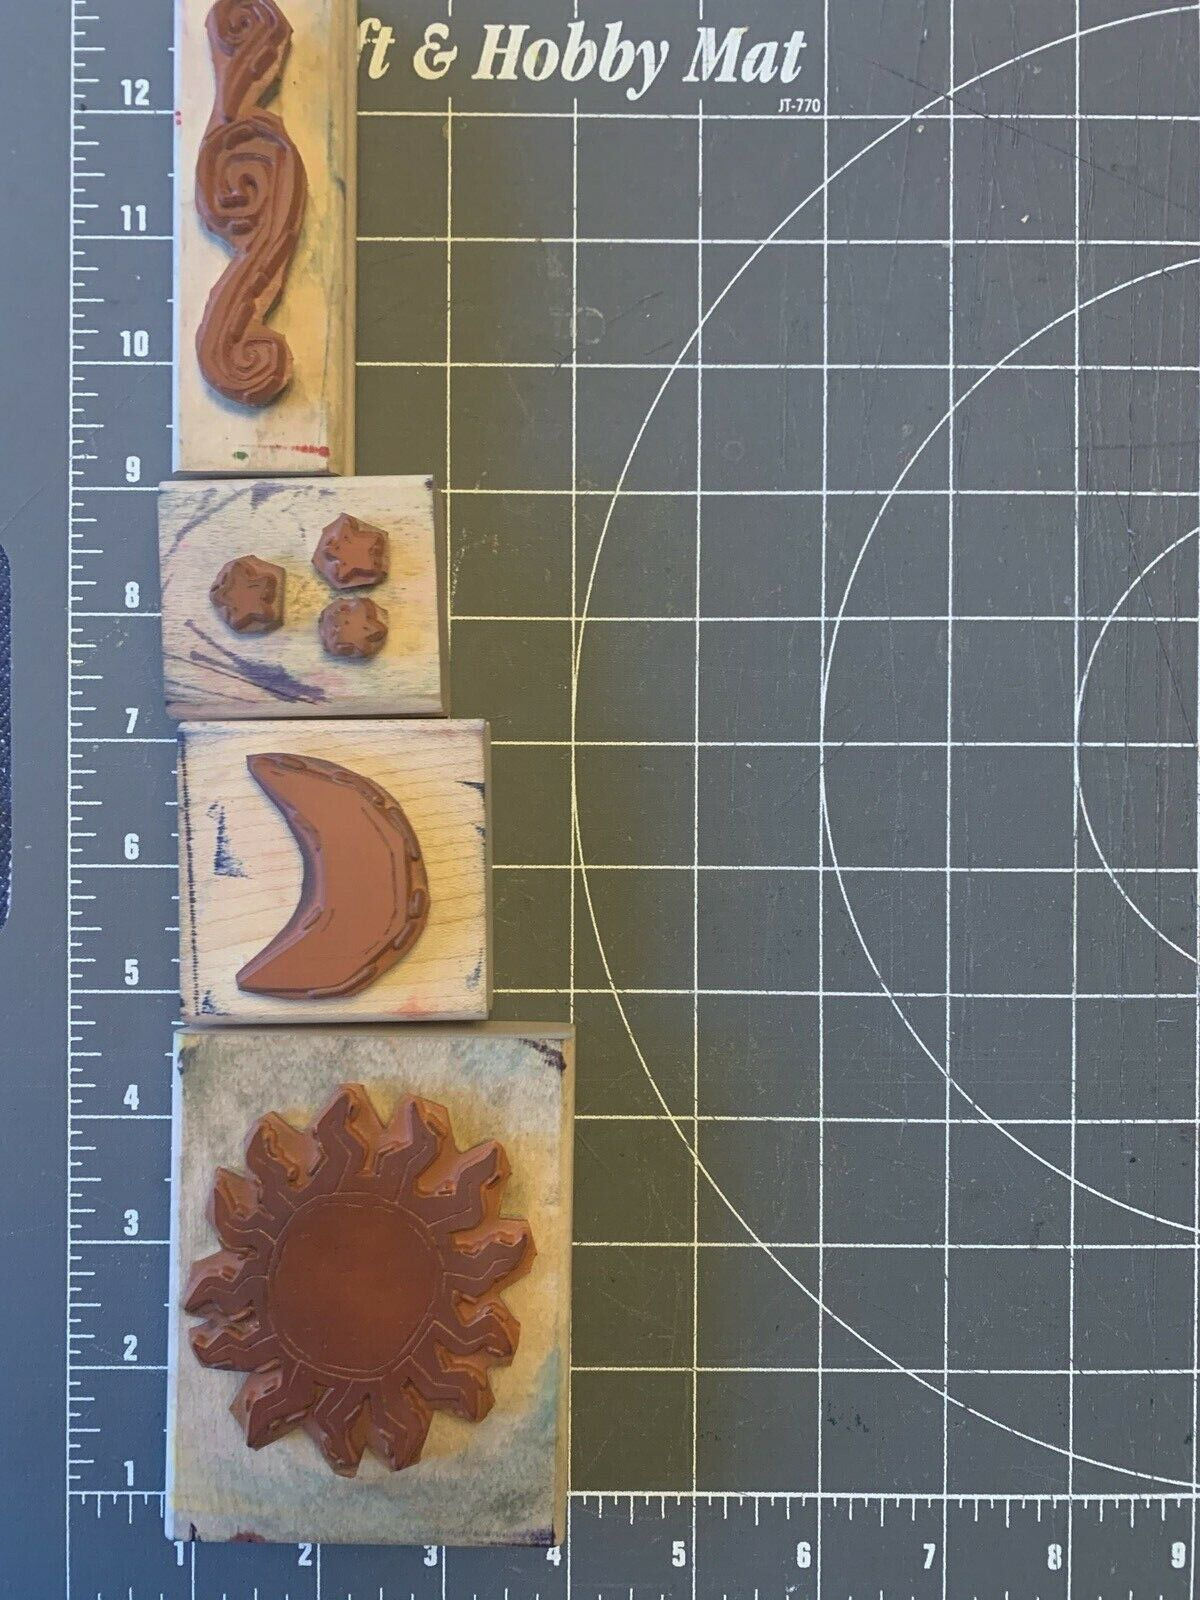 USED Lot Of 4 1995 Celestial Skies Wood Mounted Rubber-stamps Stamping Up  - $10.00